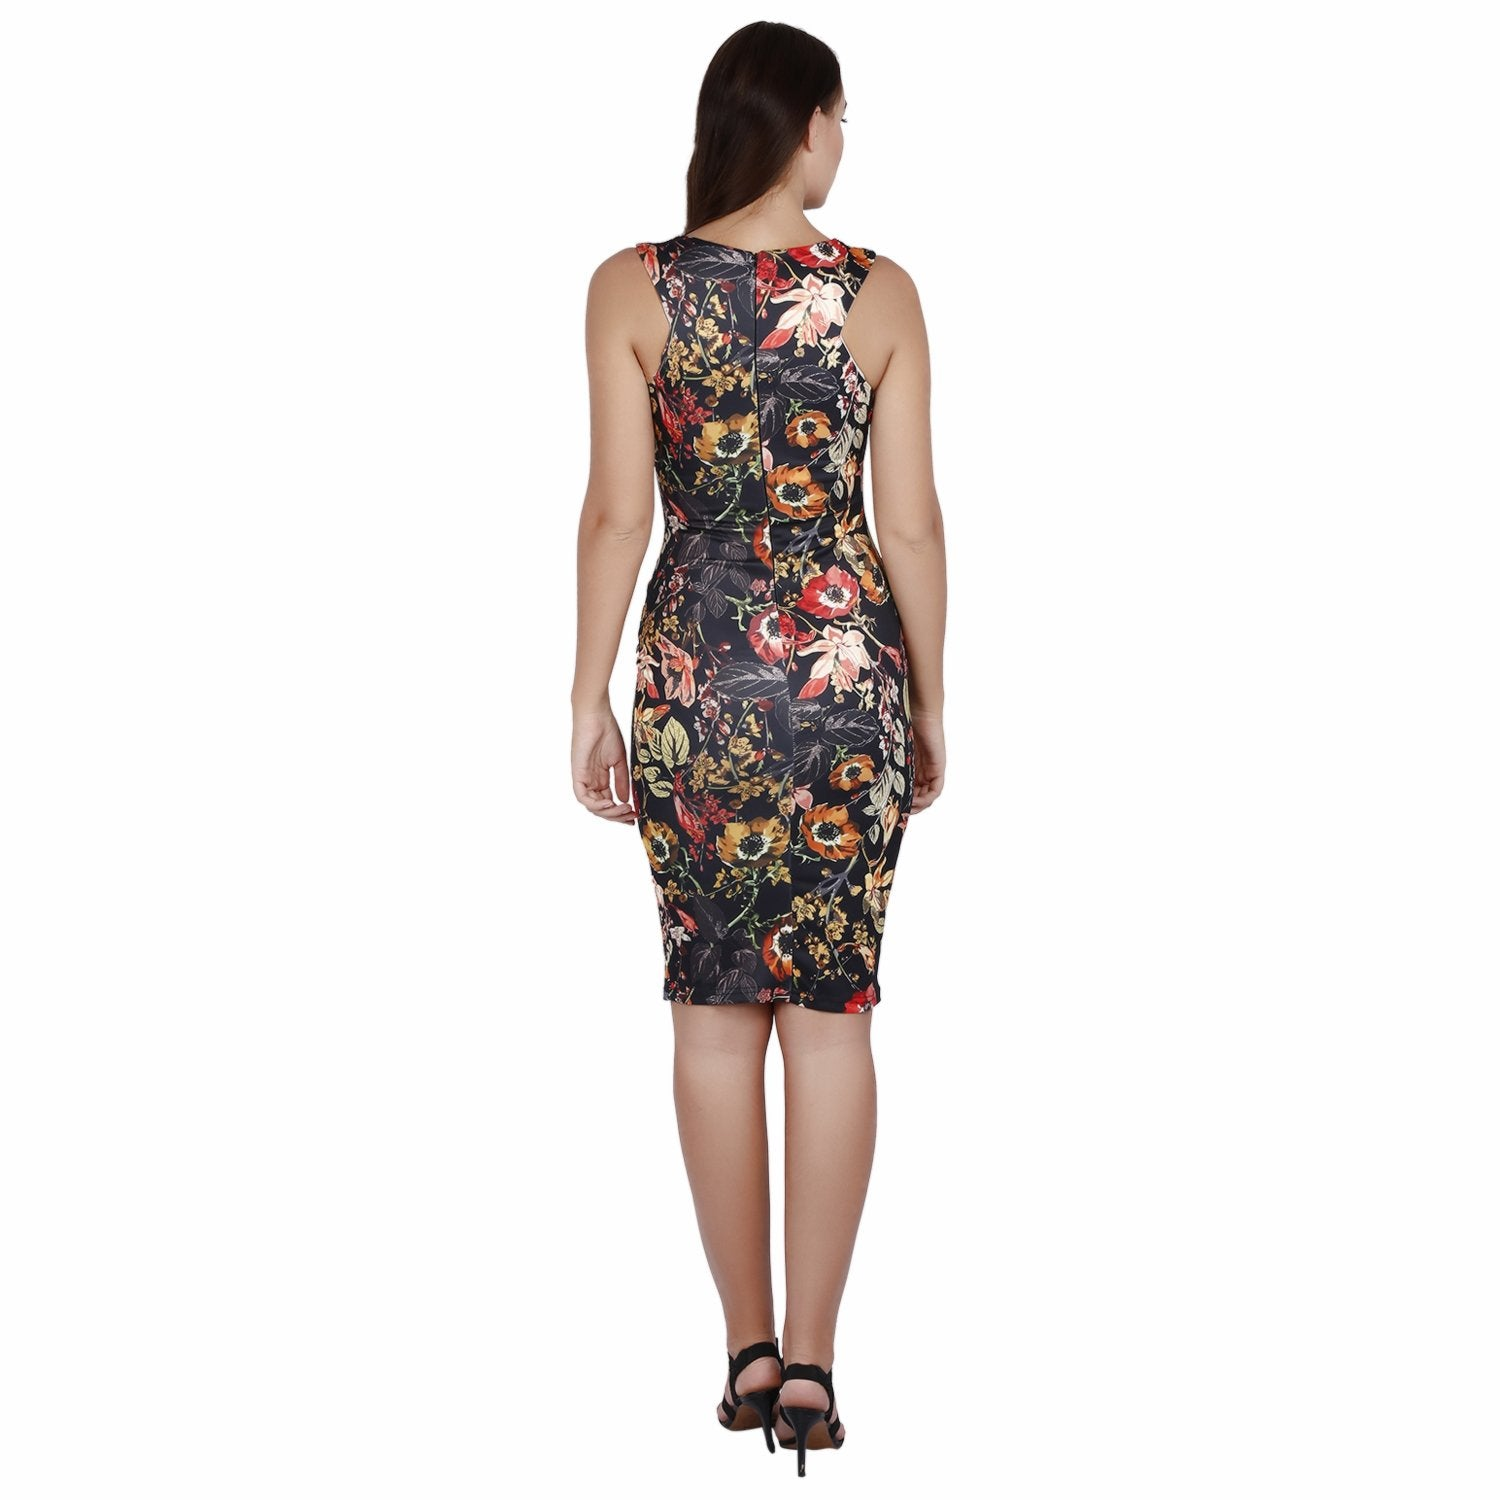 The Floral Extravaganza Dress